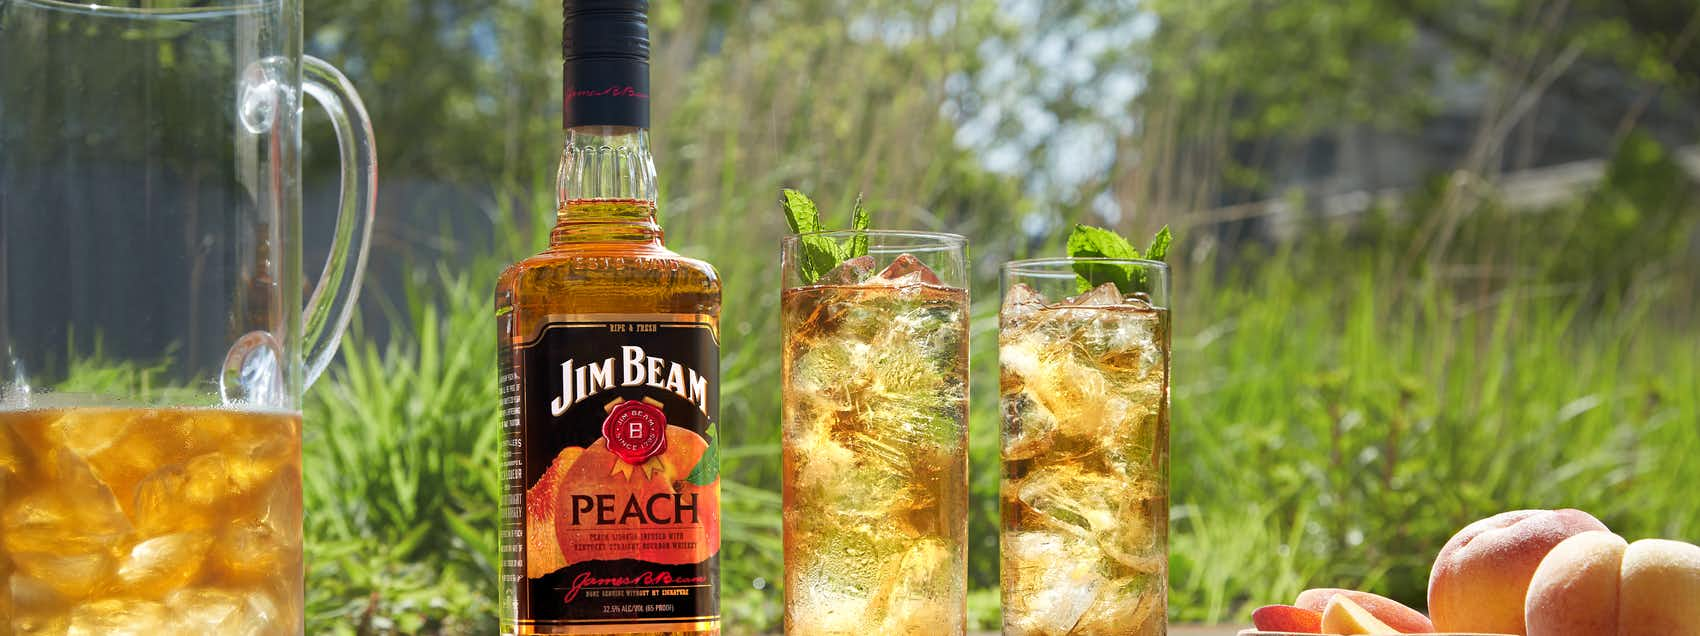 ​Jim Beam Peach Iced Tea